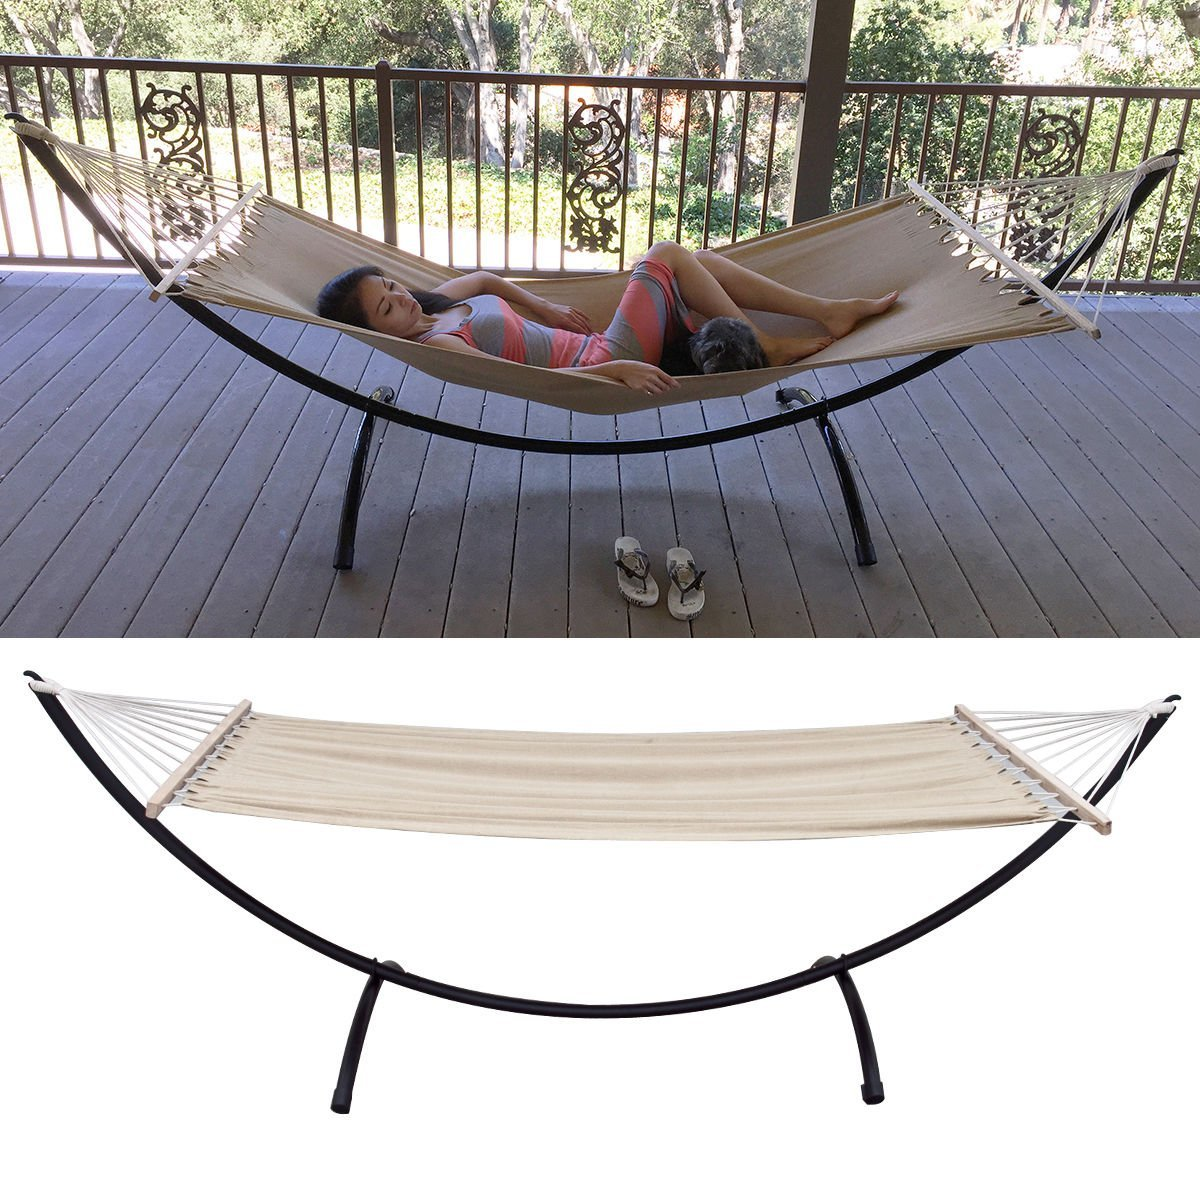 stand person hammock with hanging duty heavy chair com etsustore